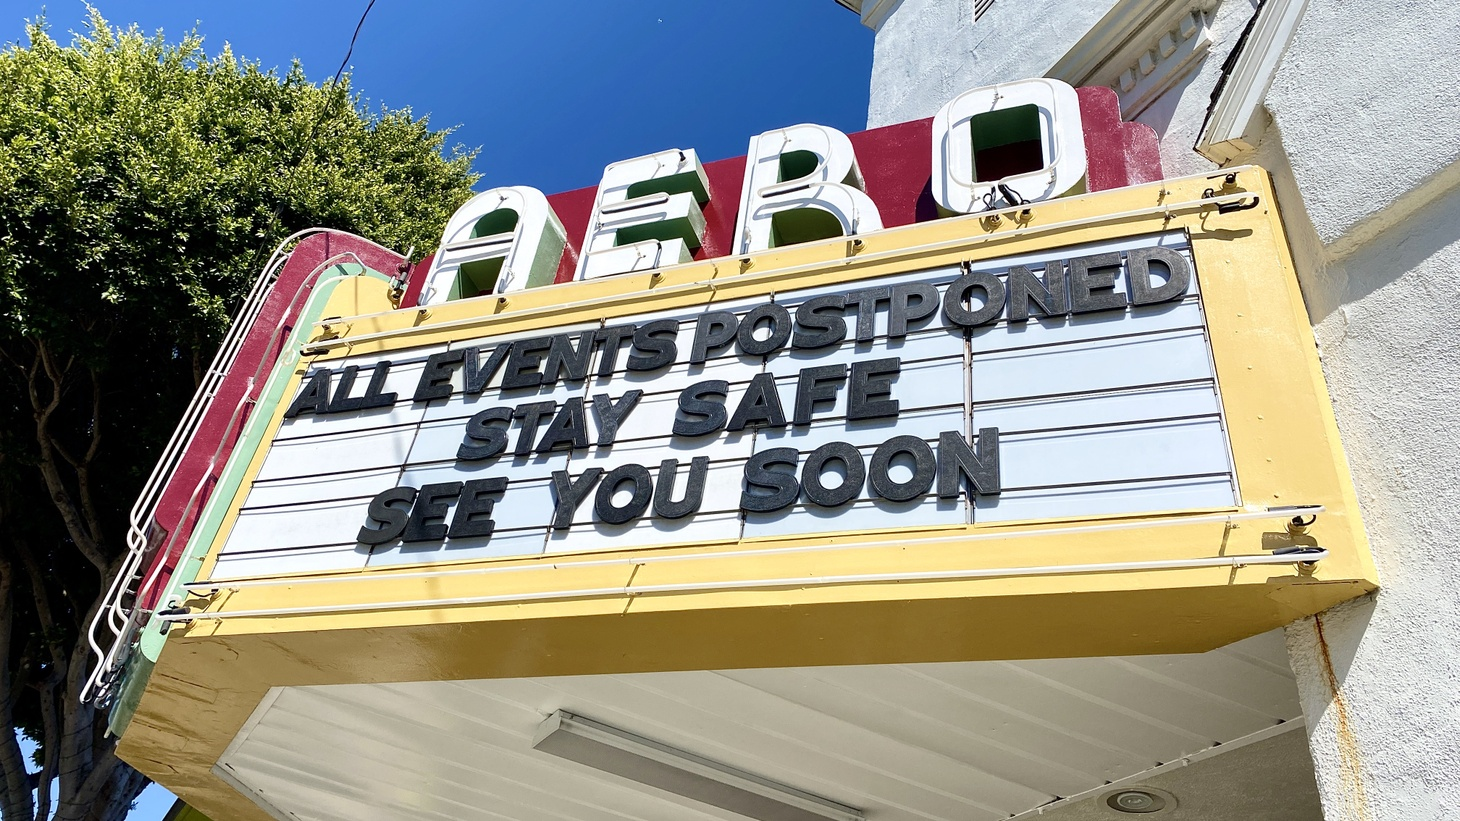 Santa Monica's Aero Theatre and many other entertainment venues shut down during the COVID-19 pandemic. But now the governor is allowing film and TV production to restart.